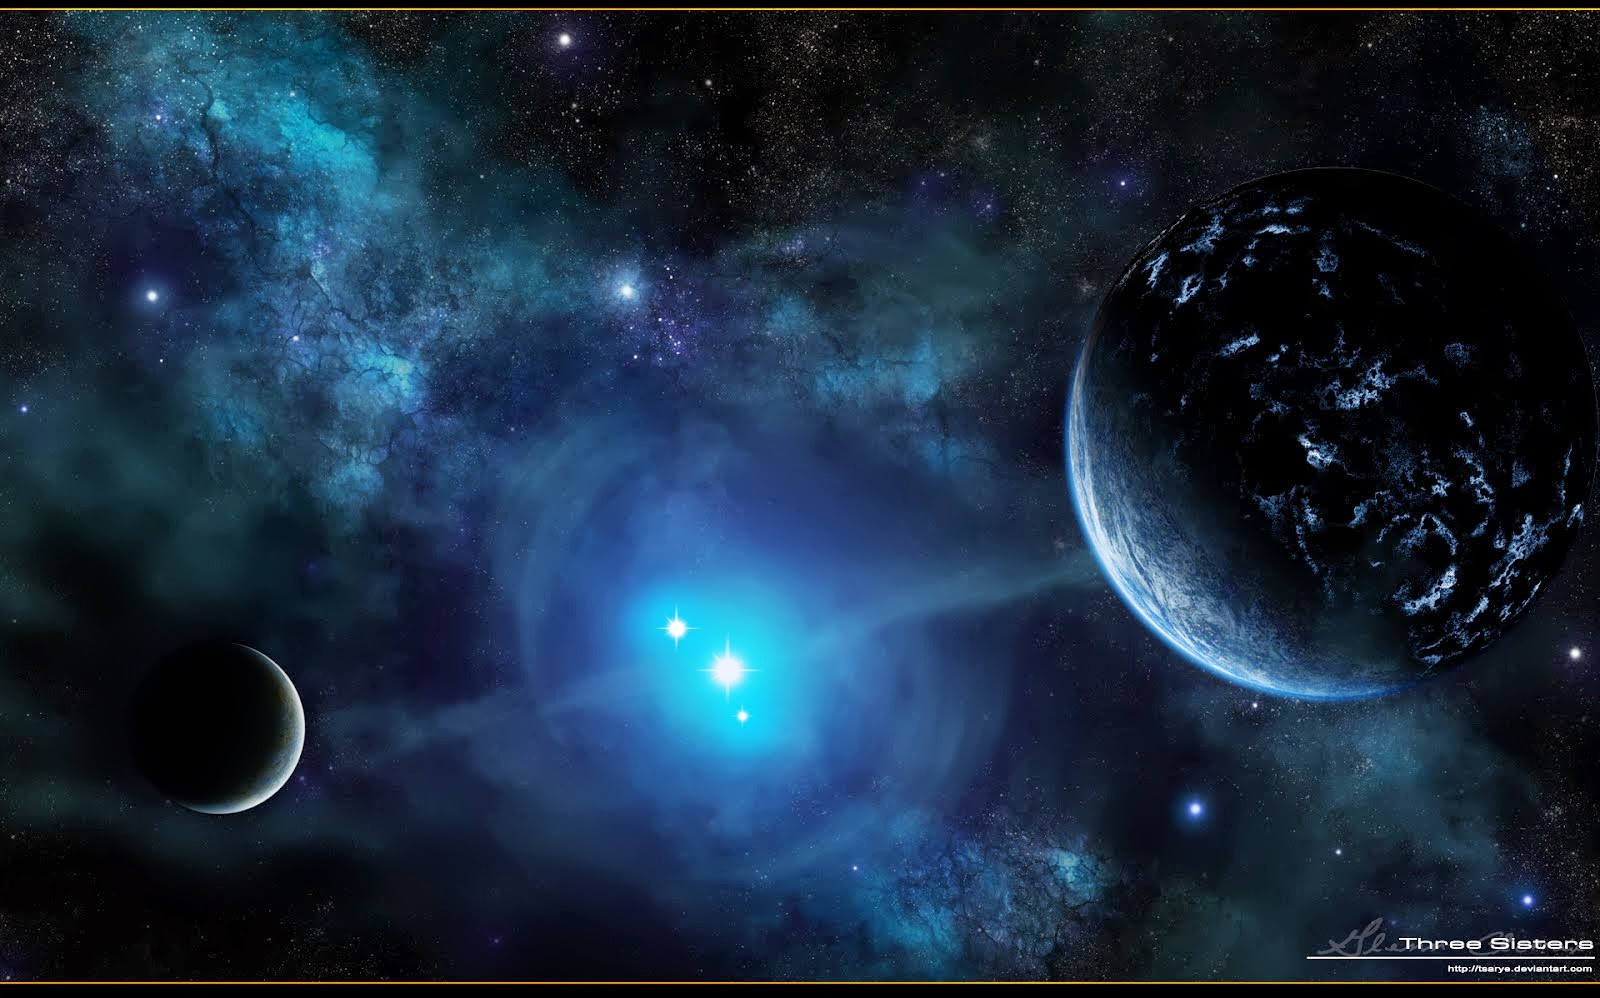 Space Wallpapers High Resolution: Space Fantasy Wallpaper